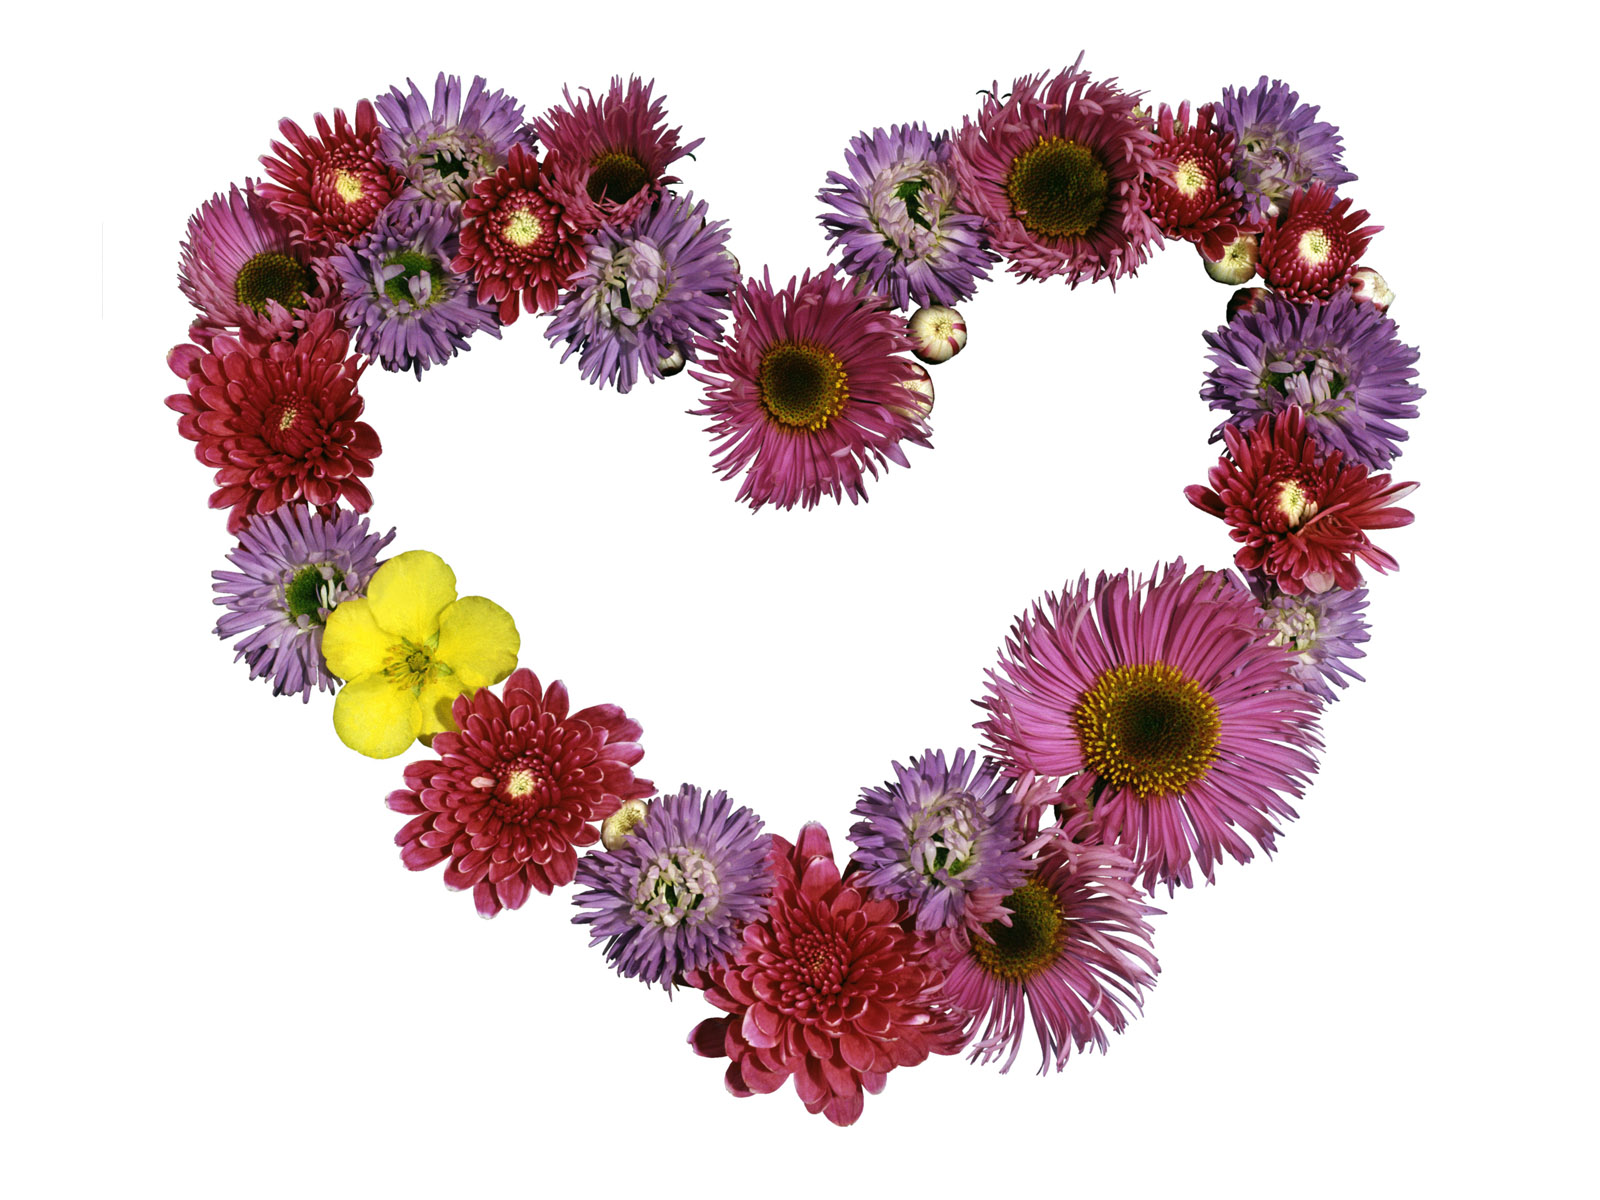 Image Flowers Heart Wallpapers And Stock Photos